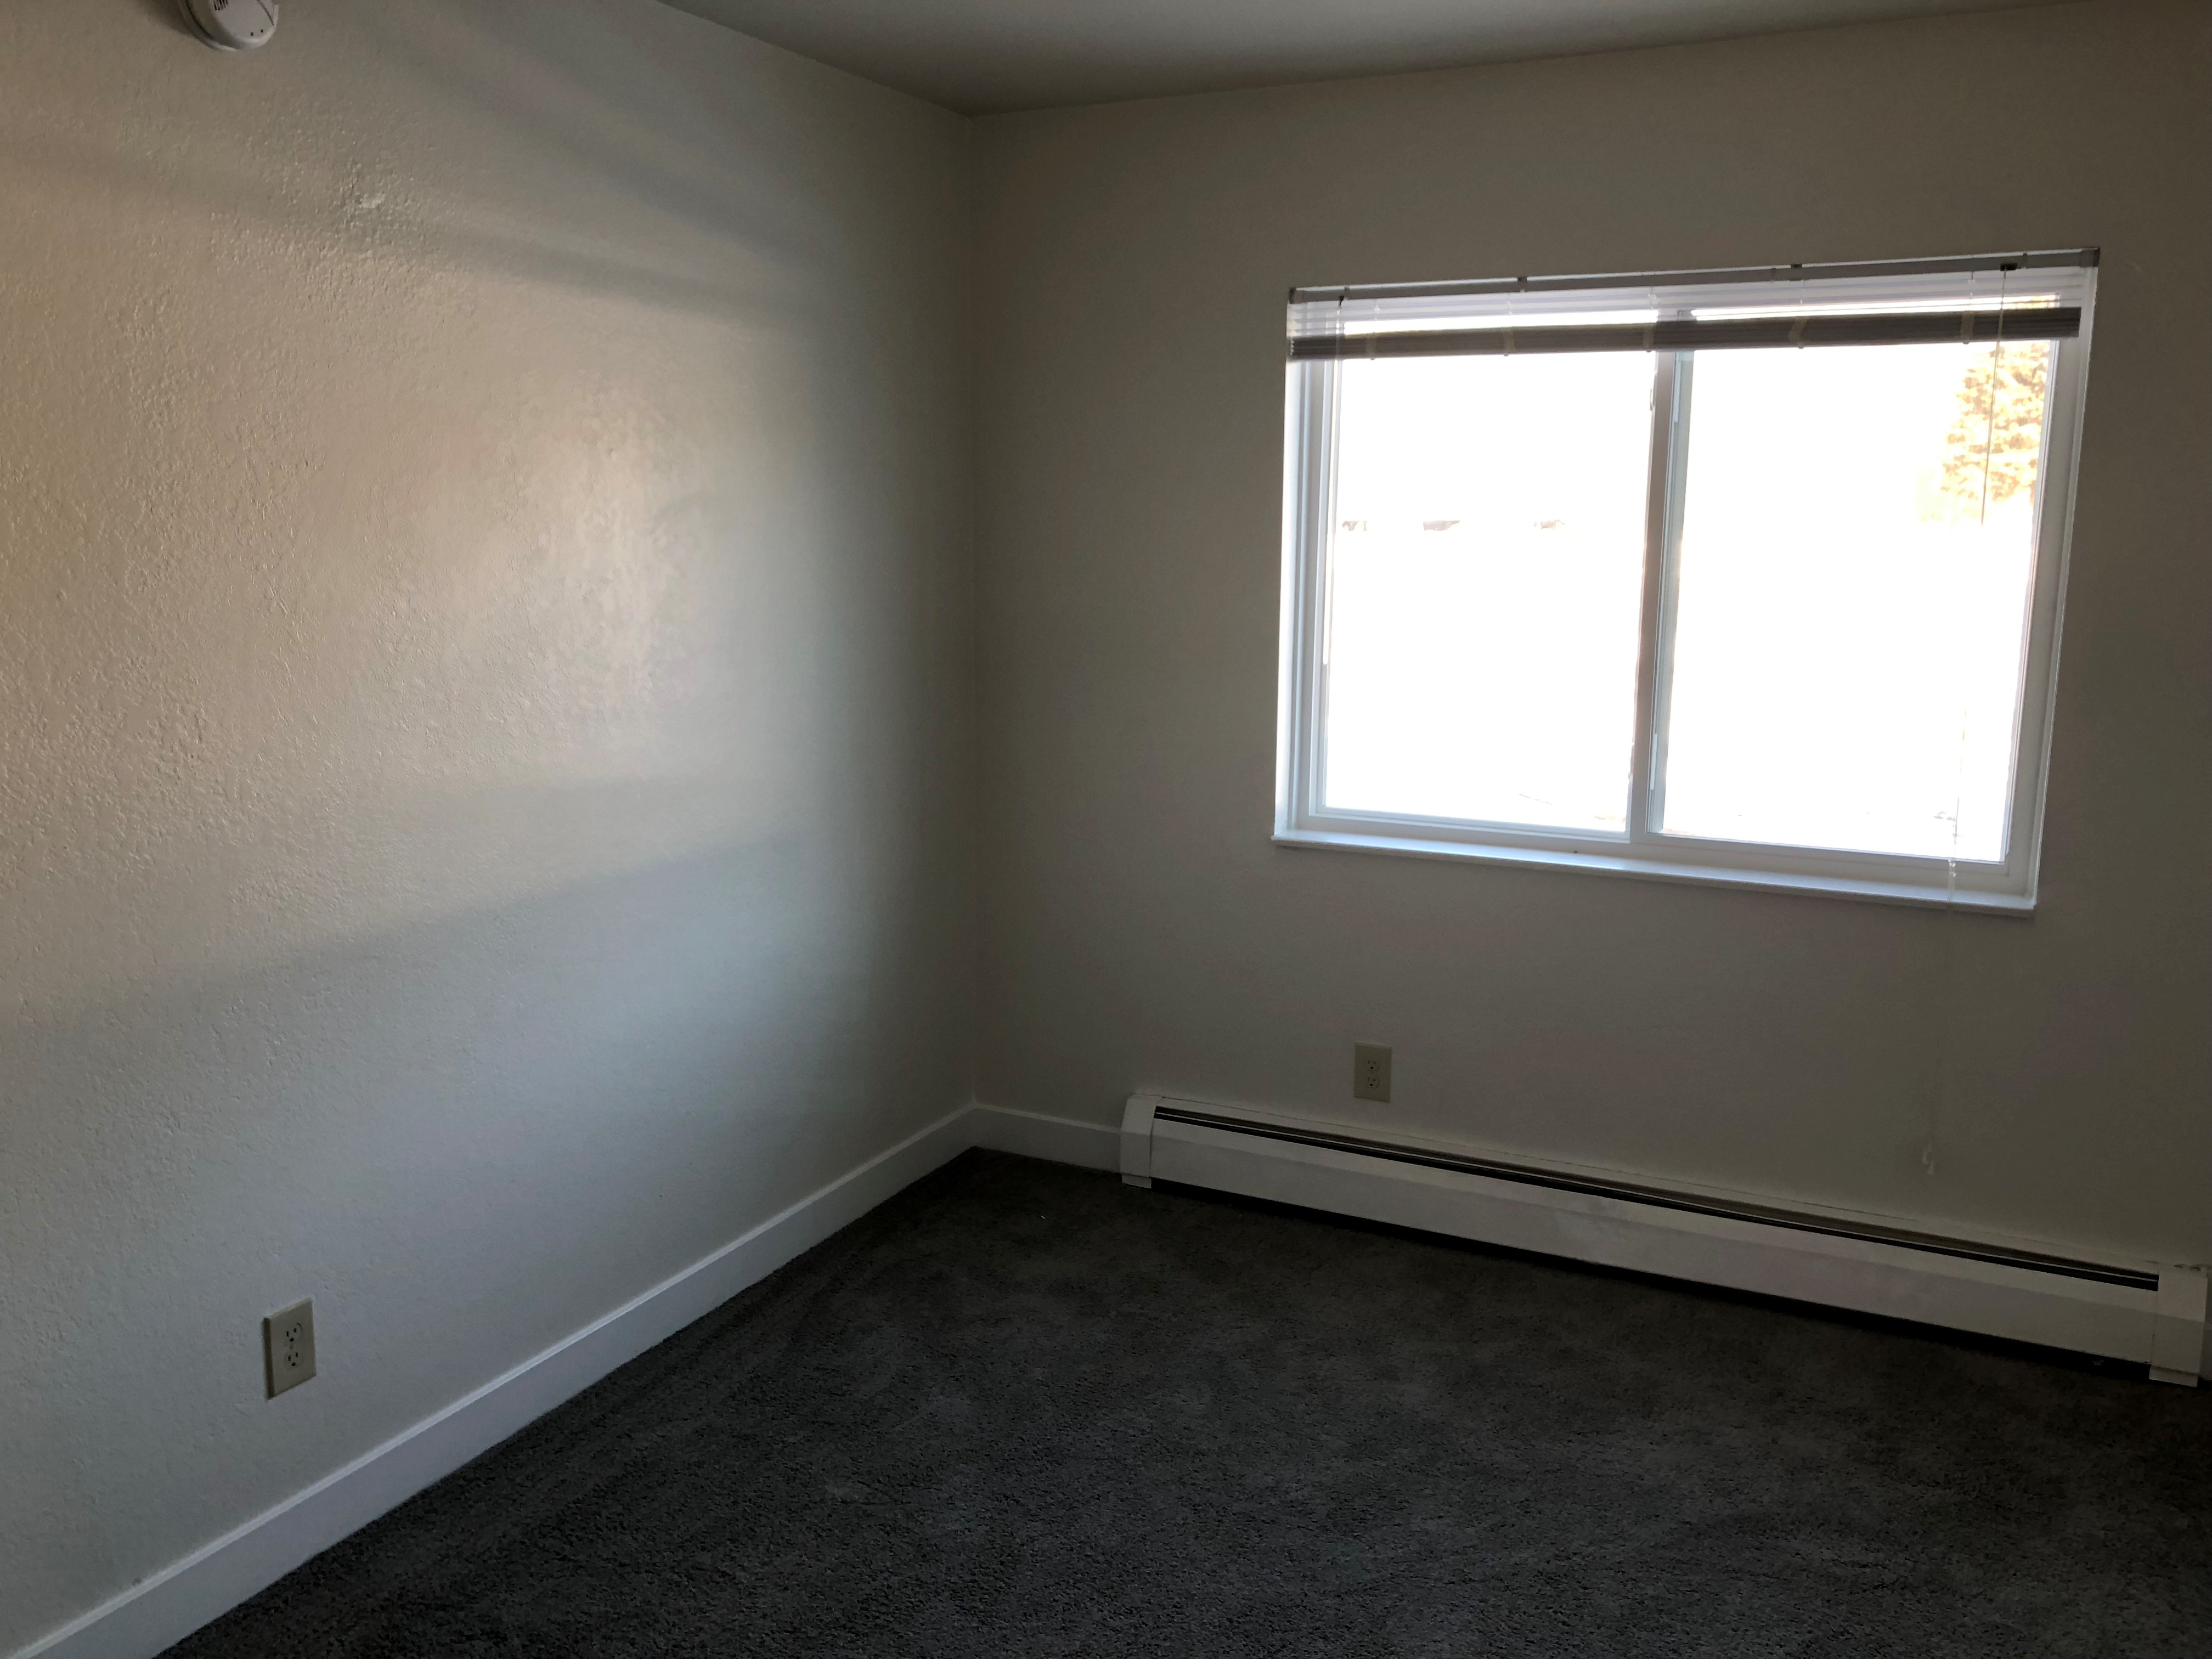 2 BR large bedroom